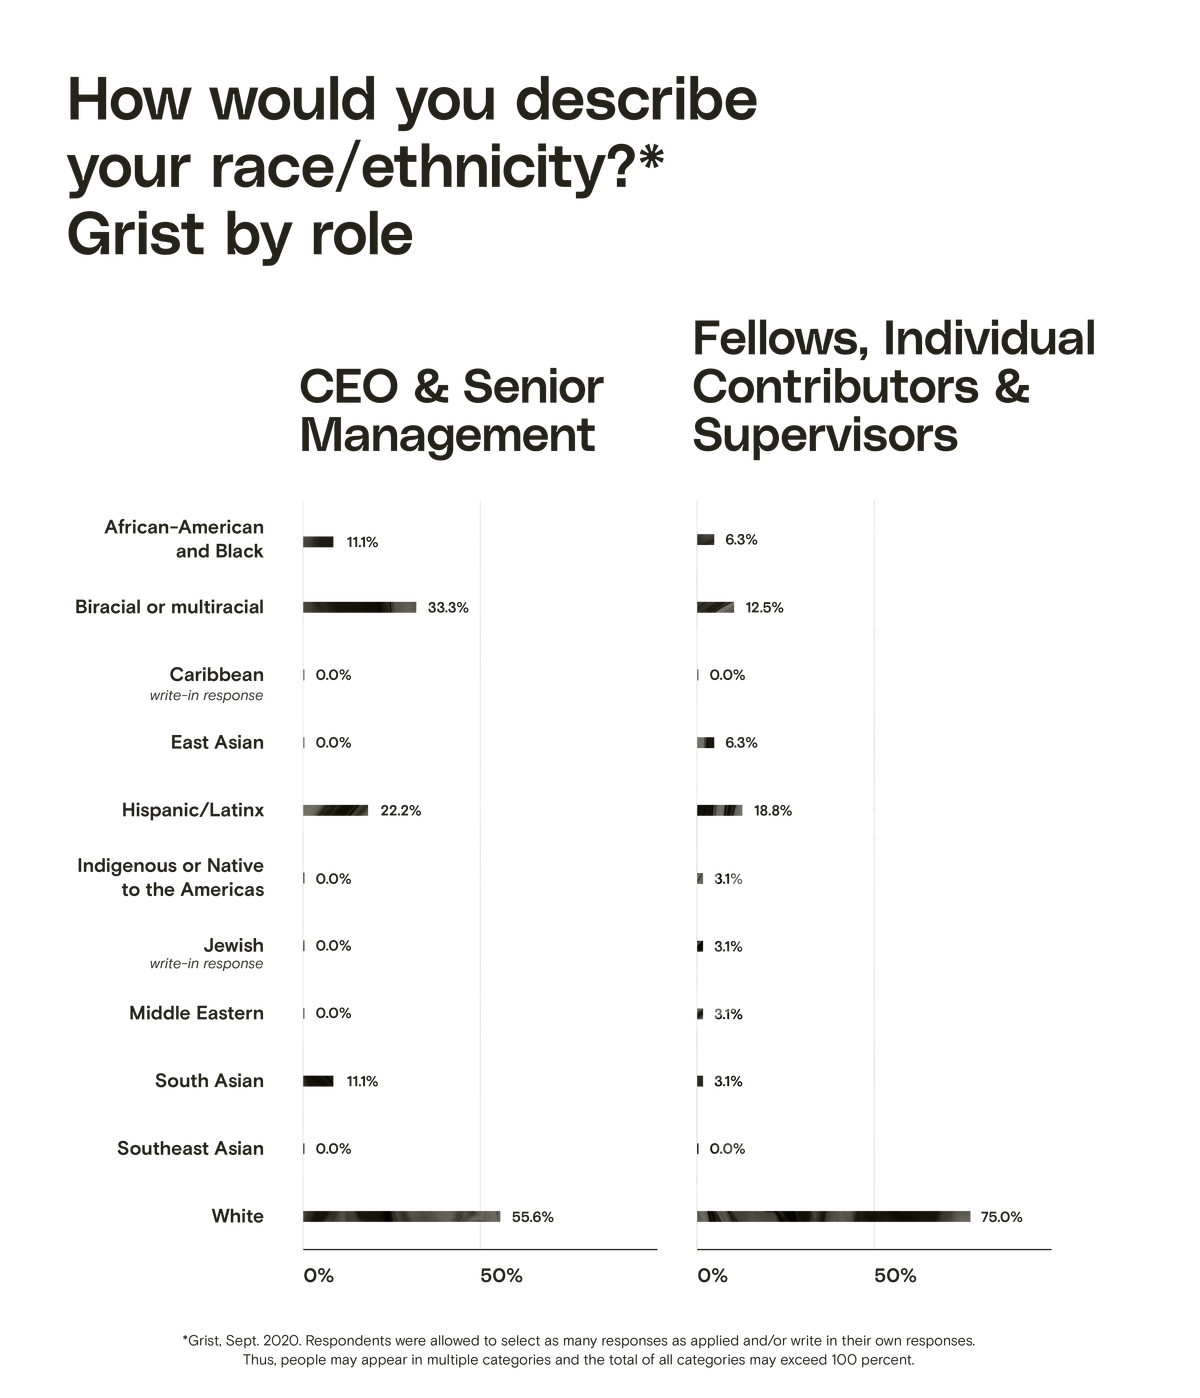 A bar chart showing race/ethnicity at Grist by role. In the CEO & Senior Management category, the three largest groups are White (55.6%), Biracial or multiracial (33.3%), and Hispanic/Latinx (22.2%). In the Fellows, Individual Contributors & Supervisors category, the three largest groups are White (75%), Hispanic/Latinx (18.8%), and Biracial or multiracial (12.5%).